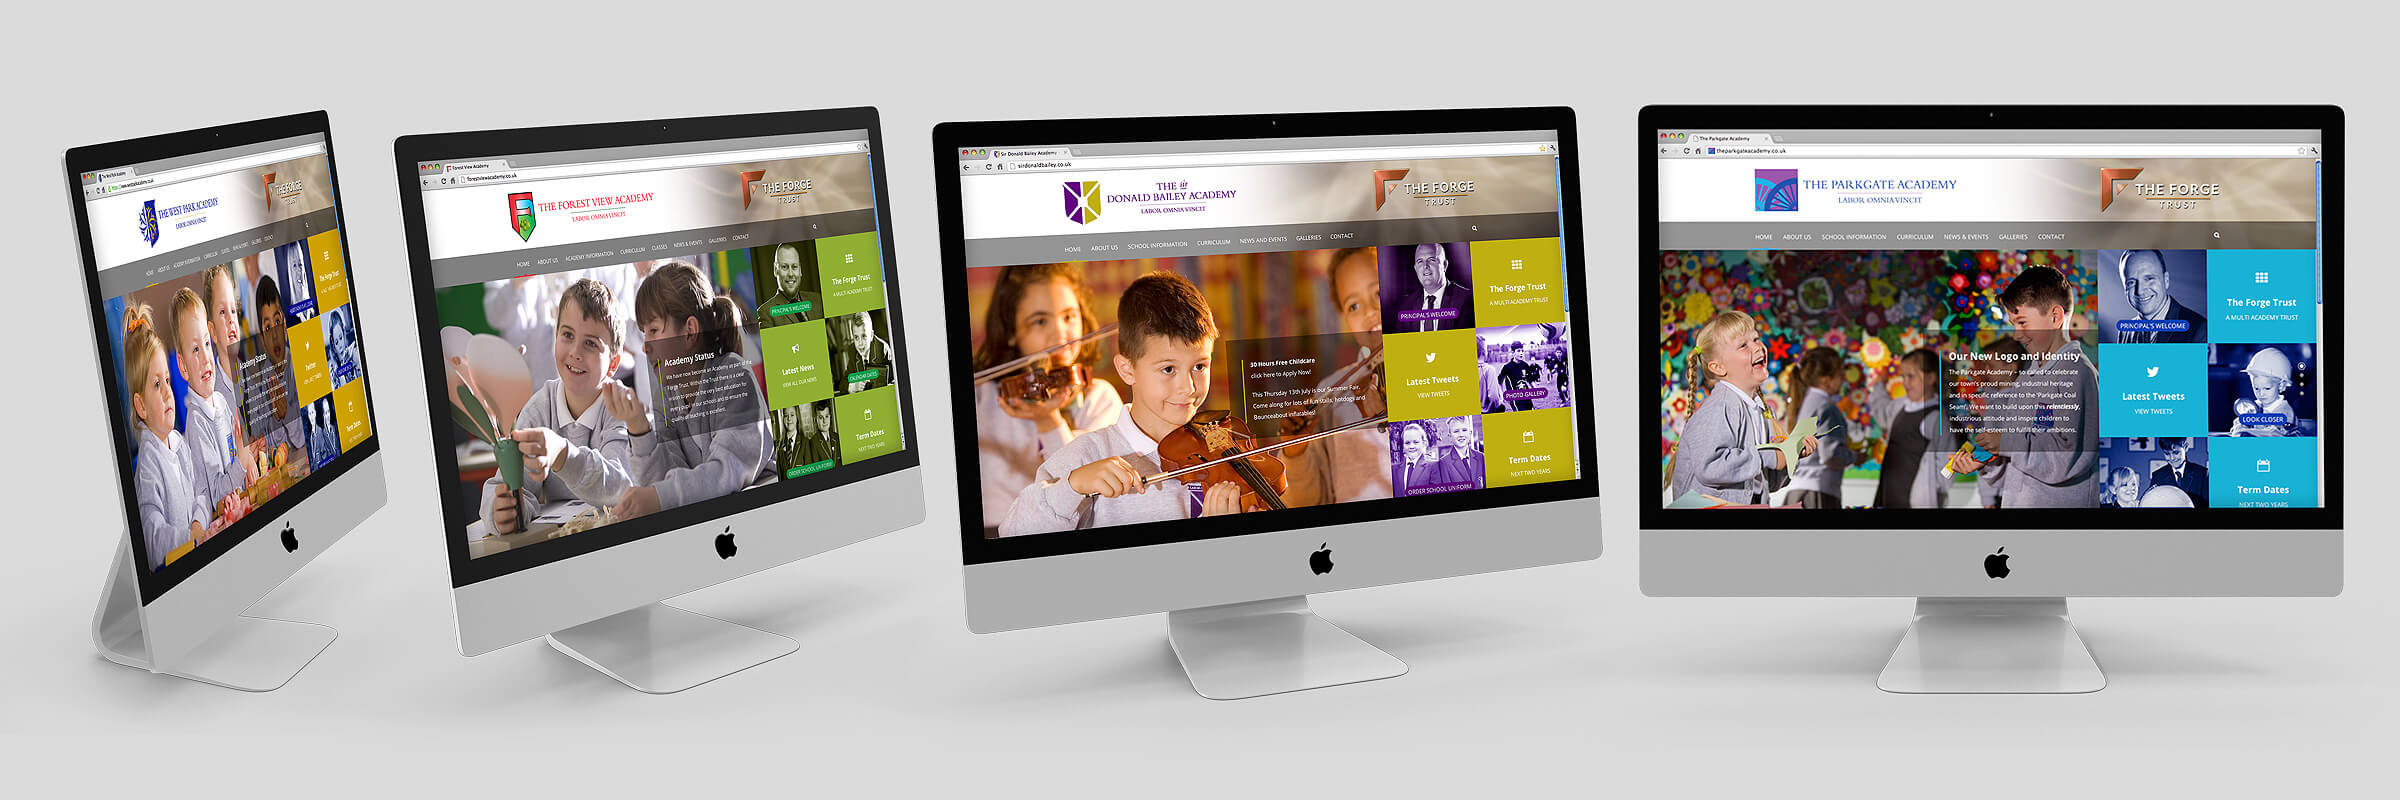 multi academy trust website design nottingham nottinghamshire lincoln lincolnshire york yorkshire